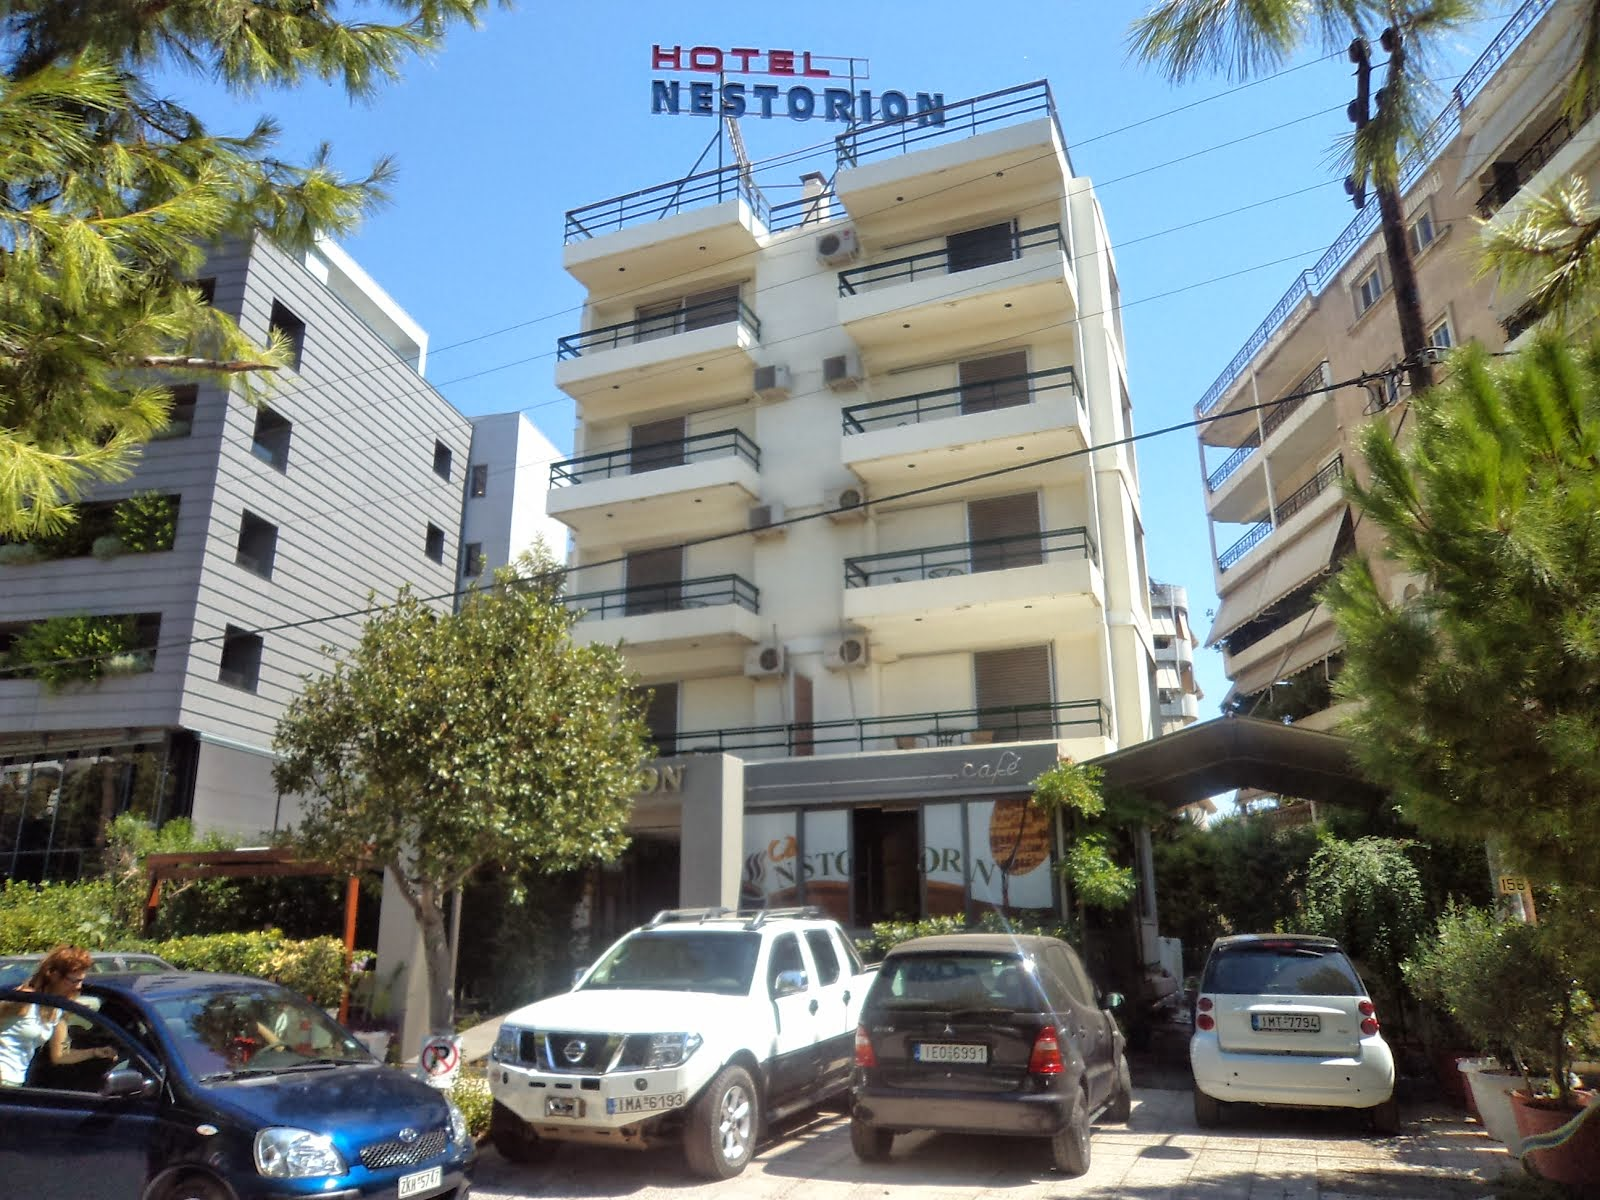 Nest stay Athens visit